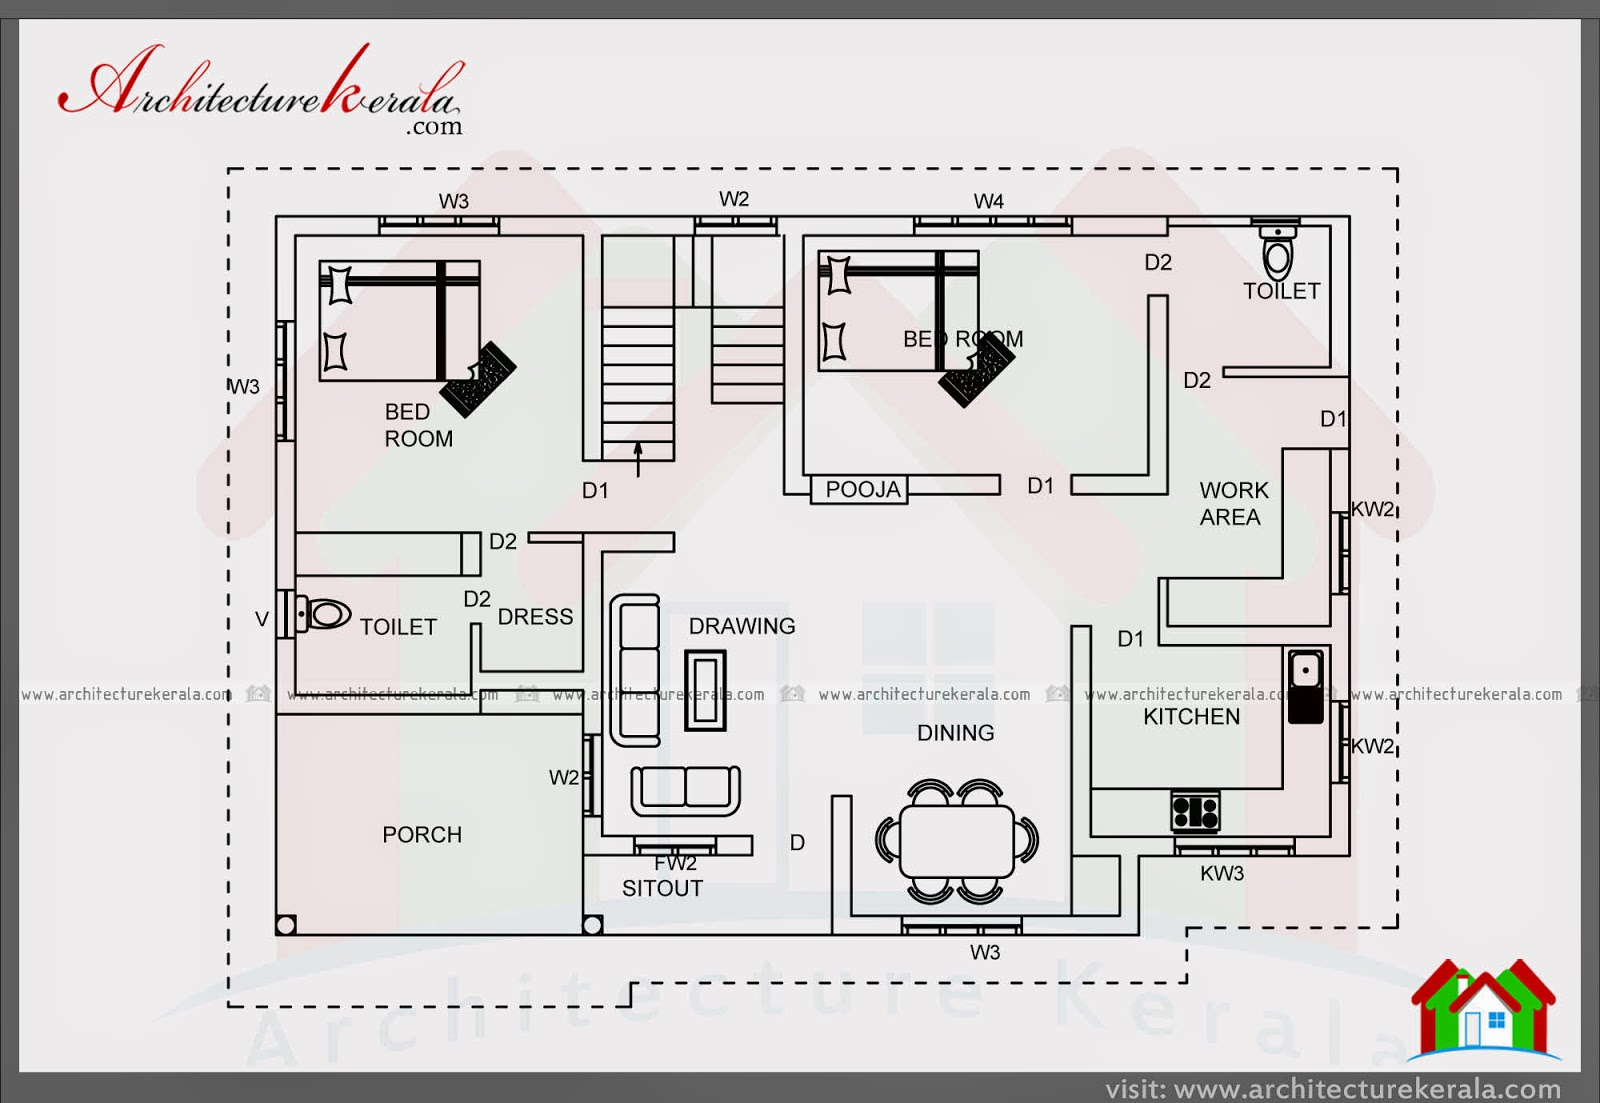 5 bedroom in 2000 sft house plan architecture kerala for Two bedroom hall kitchen house plans